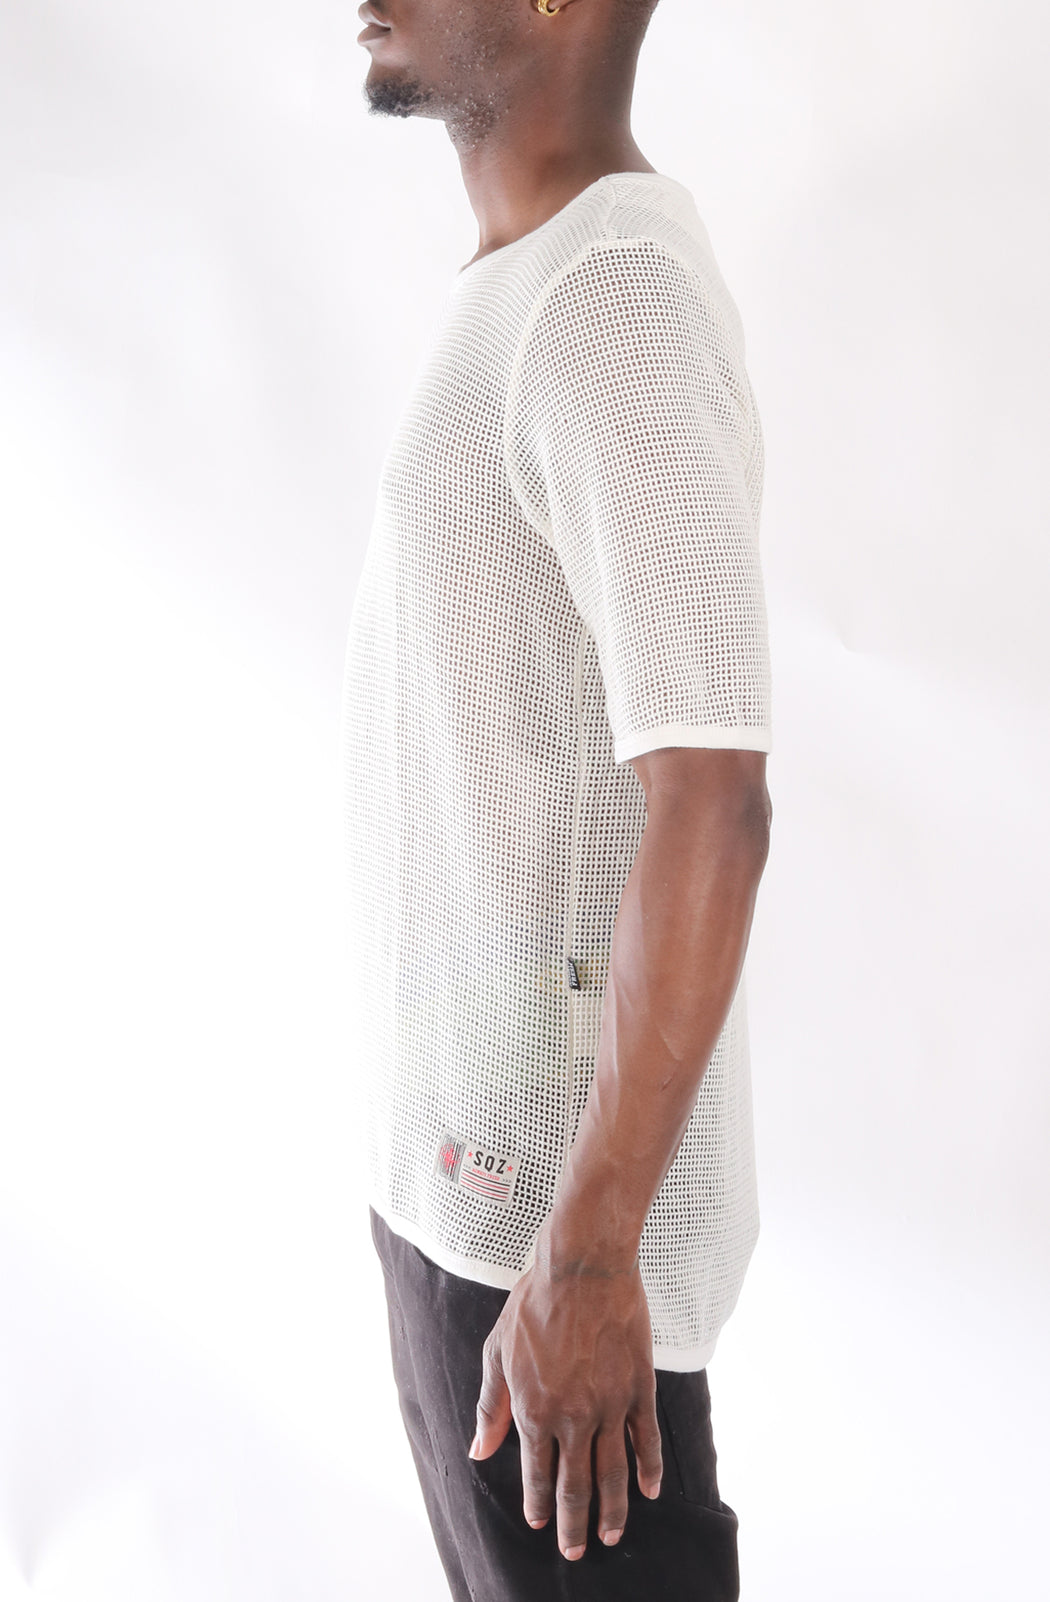 S.F.C Premium Cotton Mesh T-shirt With Finely Finished Edge In White (STY HT-1030-WHITE)